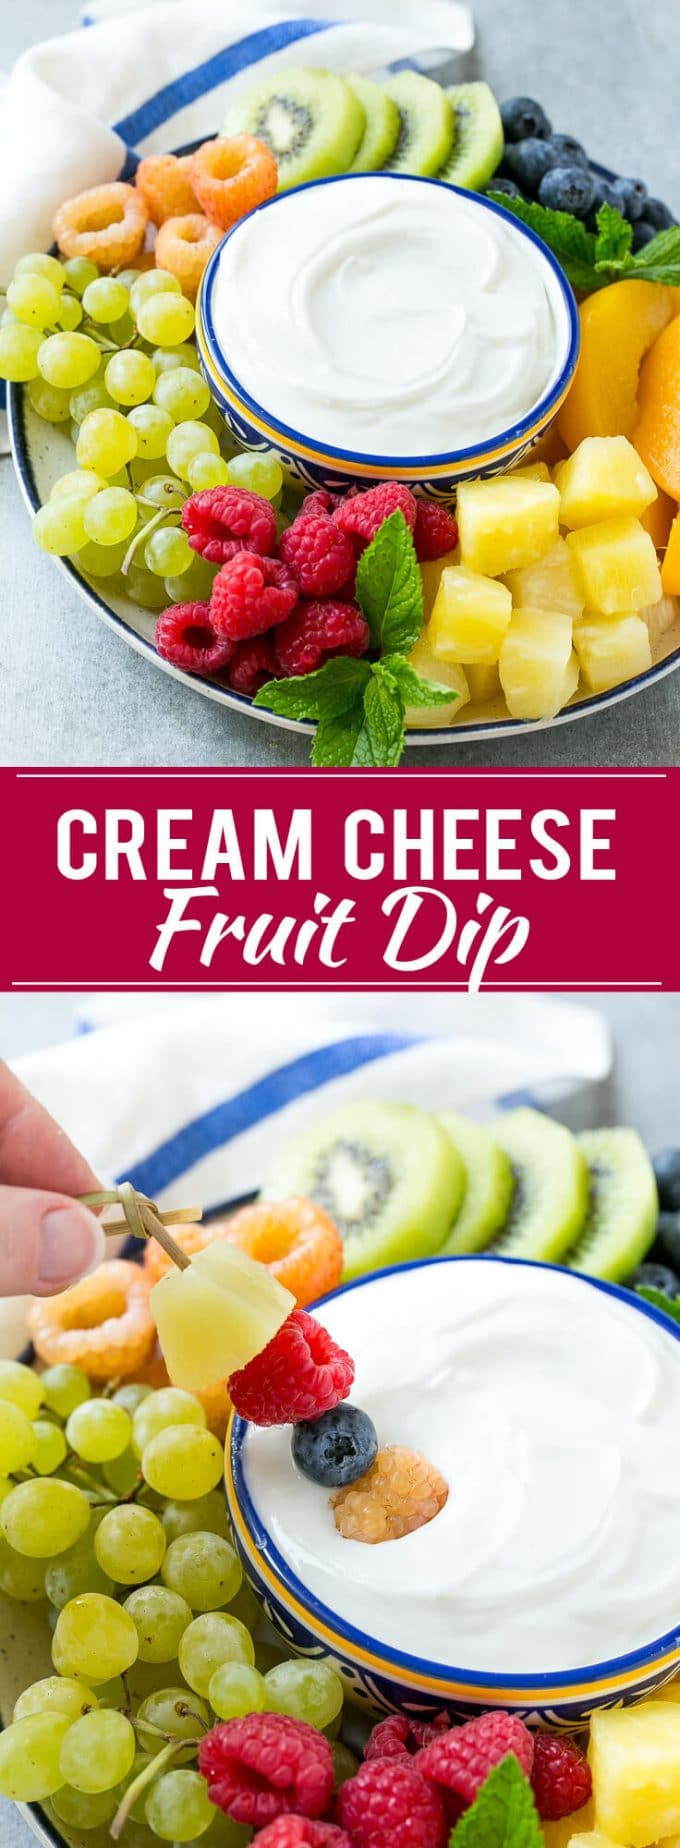 Healthy Snacks With Cream Cheese  Cream Cheese Fruit Dip Dinner at the Zoo